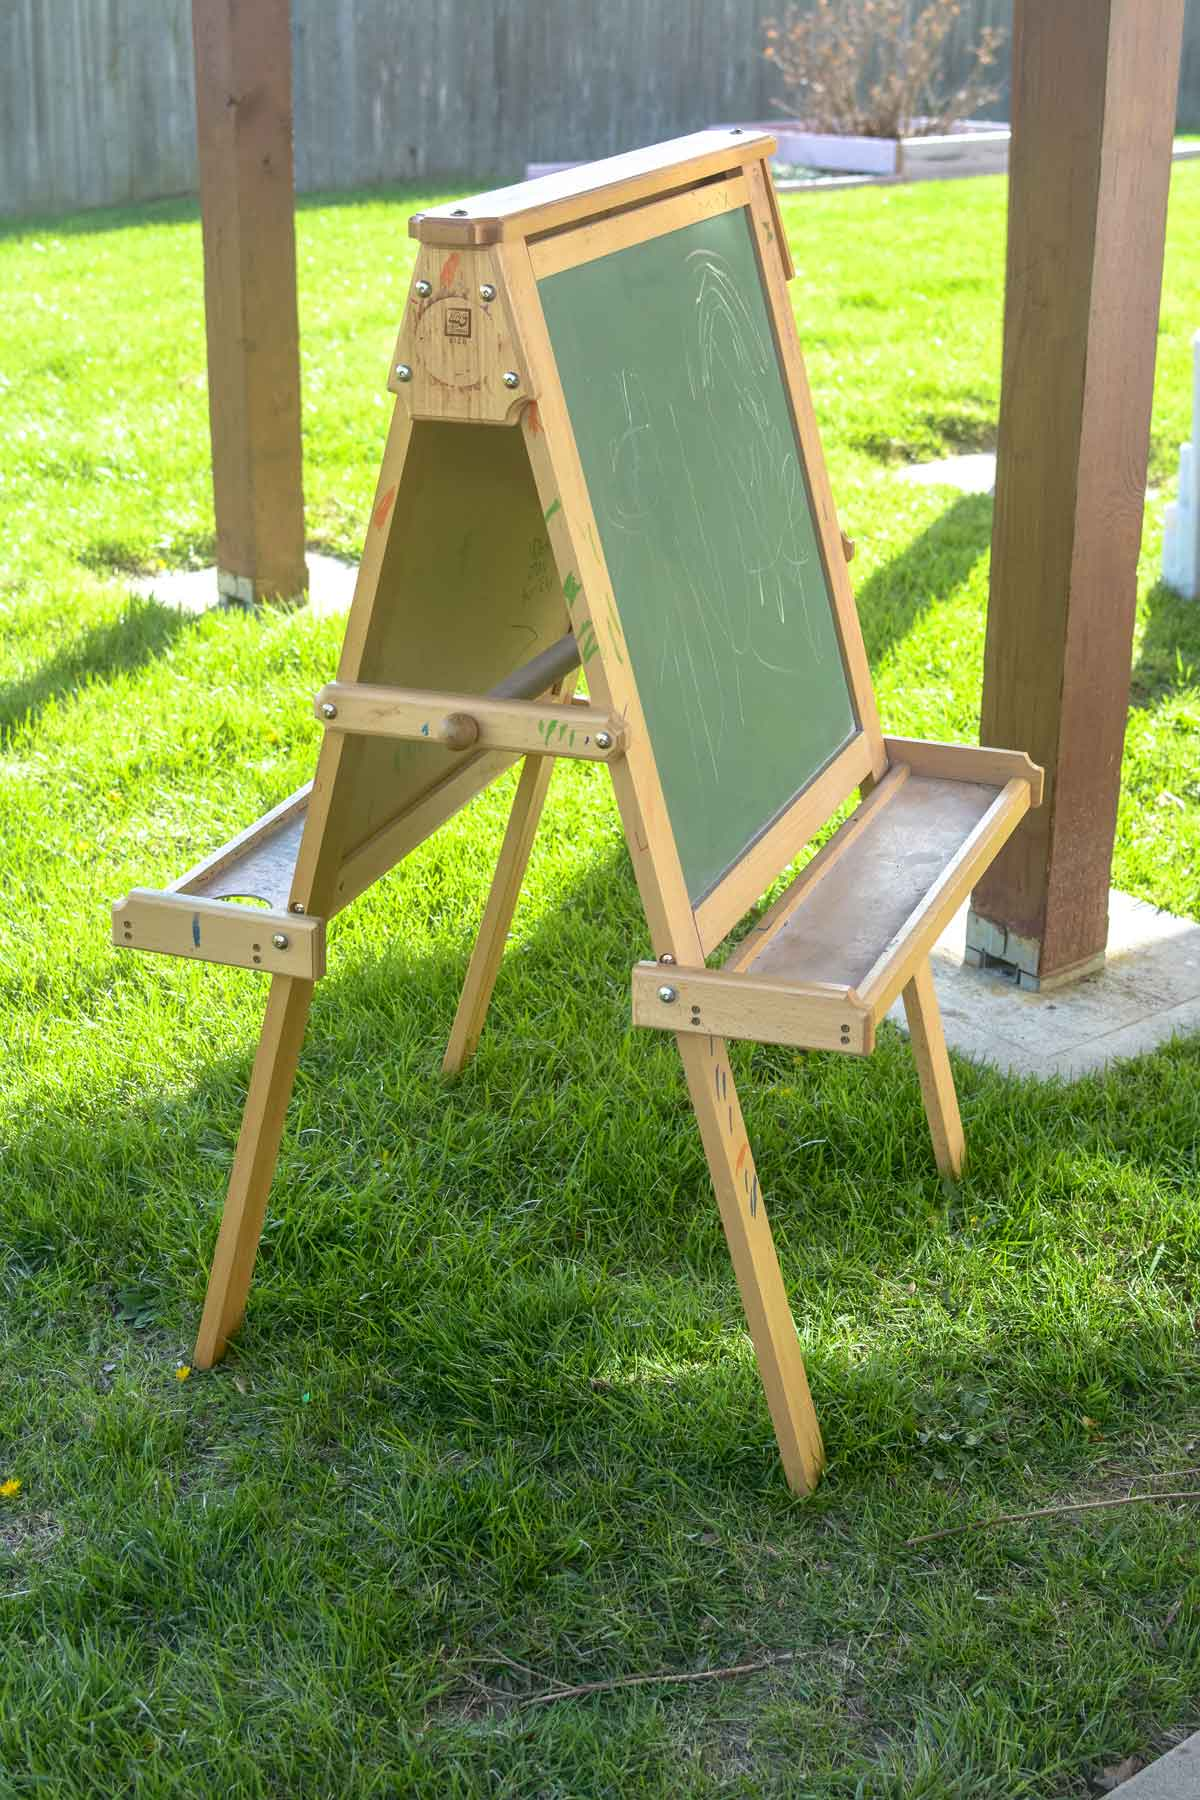 To start, my dad helped me disassemble the easel and I sanded each part until most all of the markings had been erased.